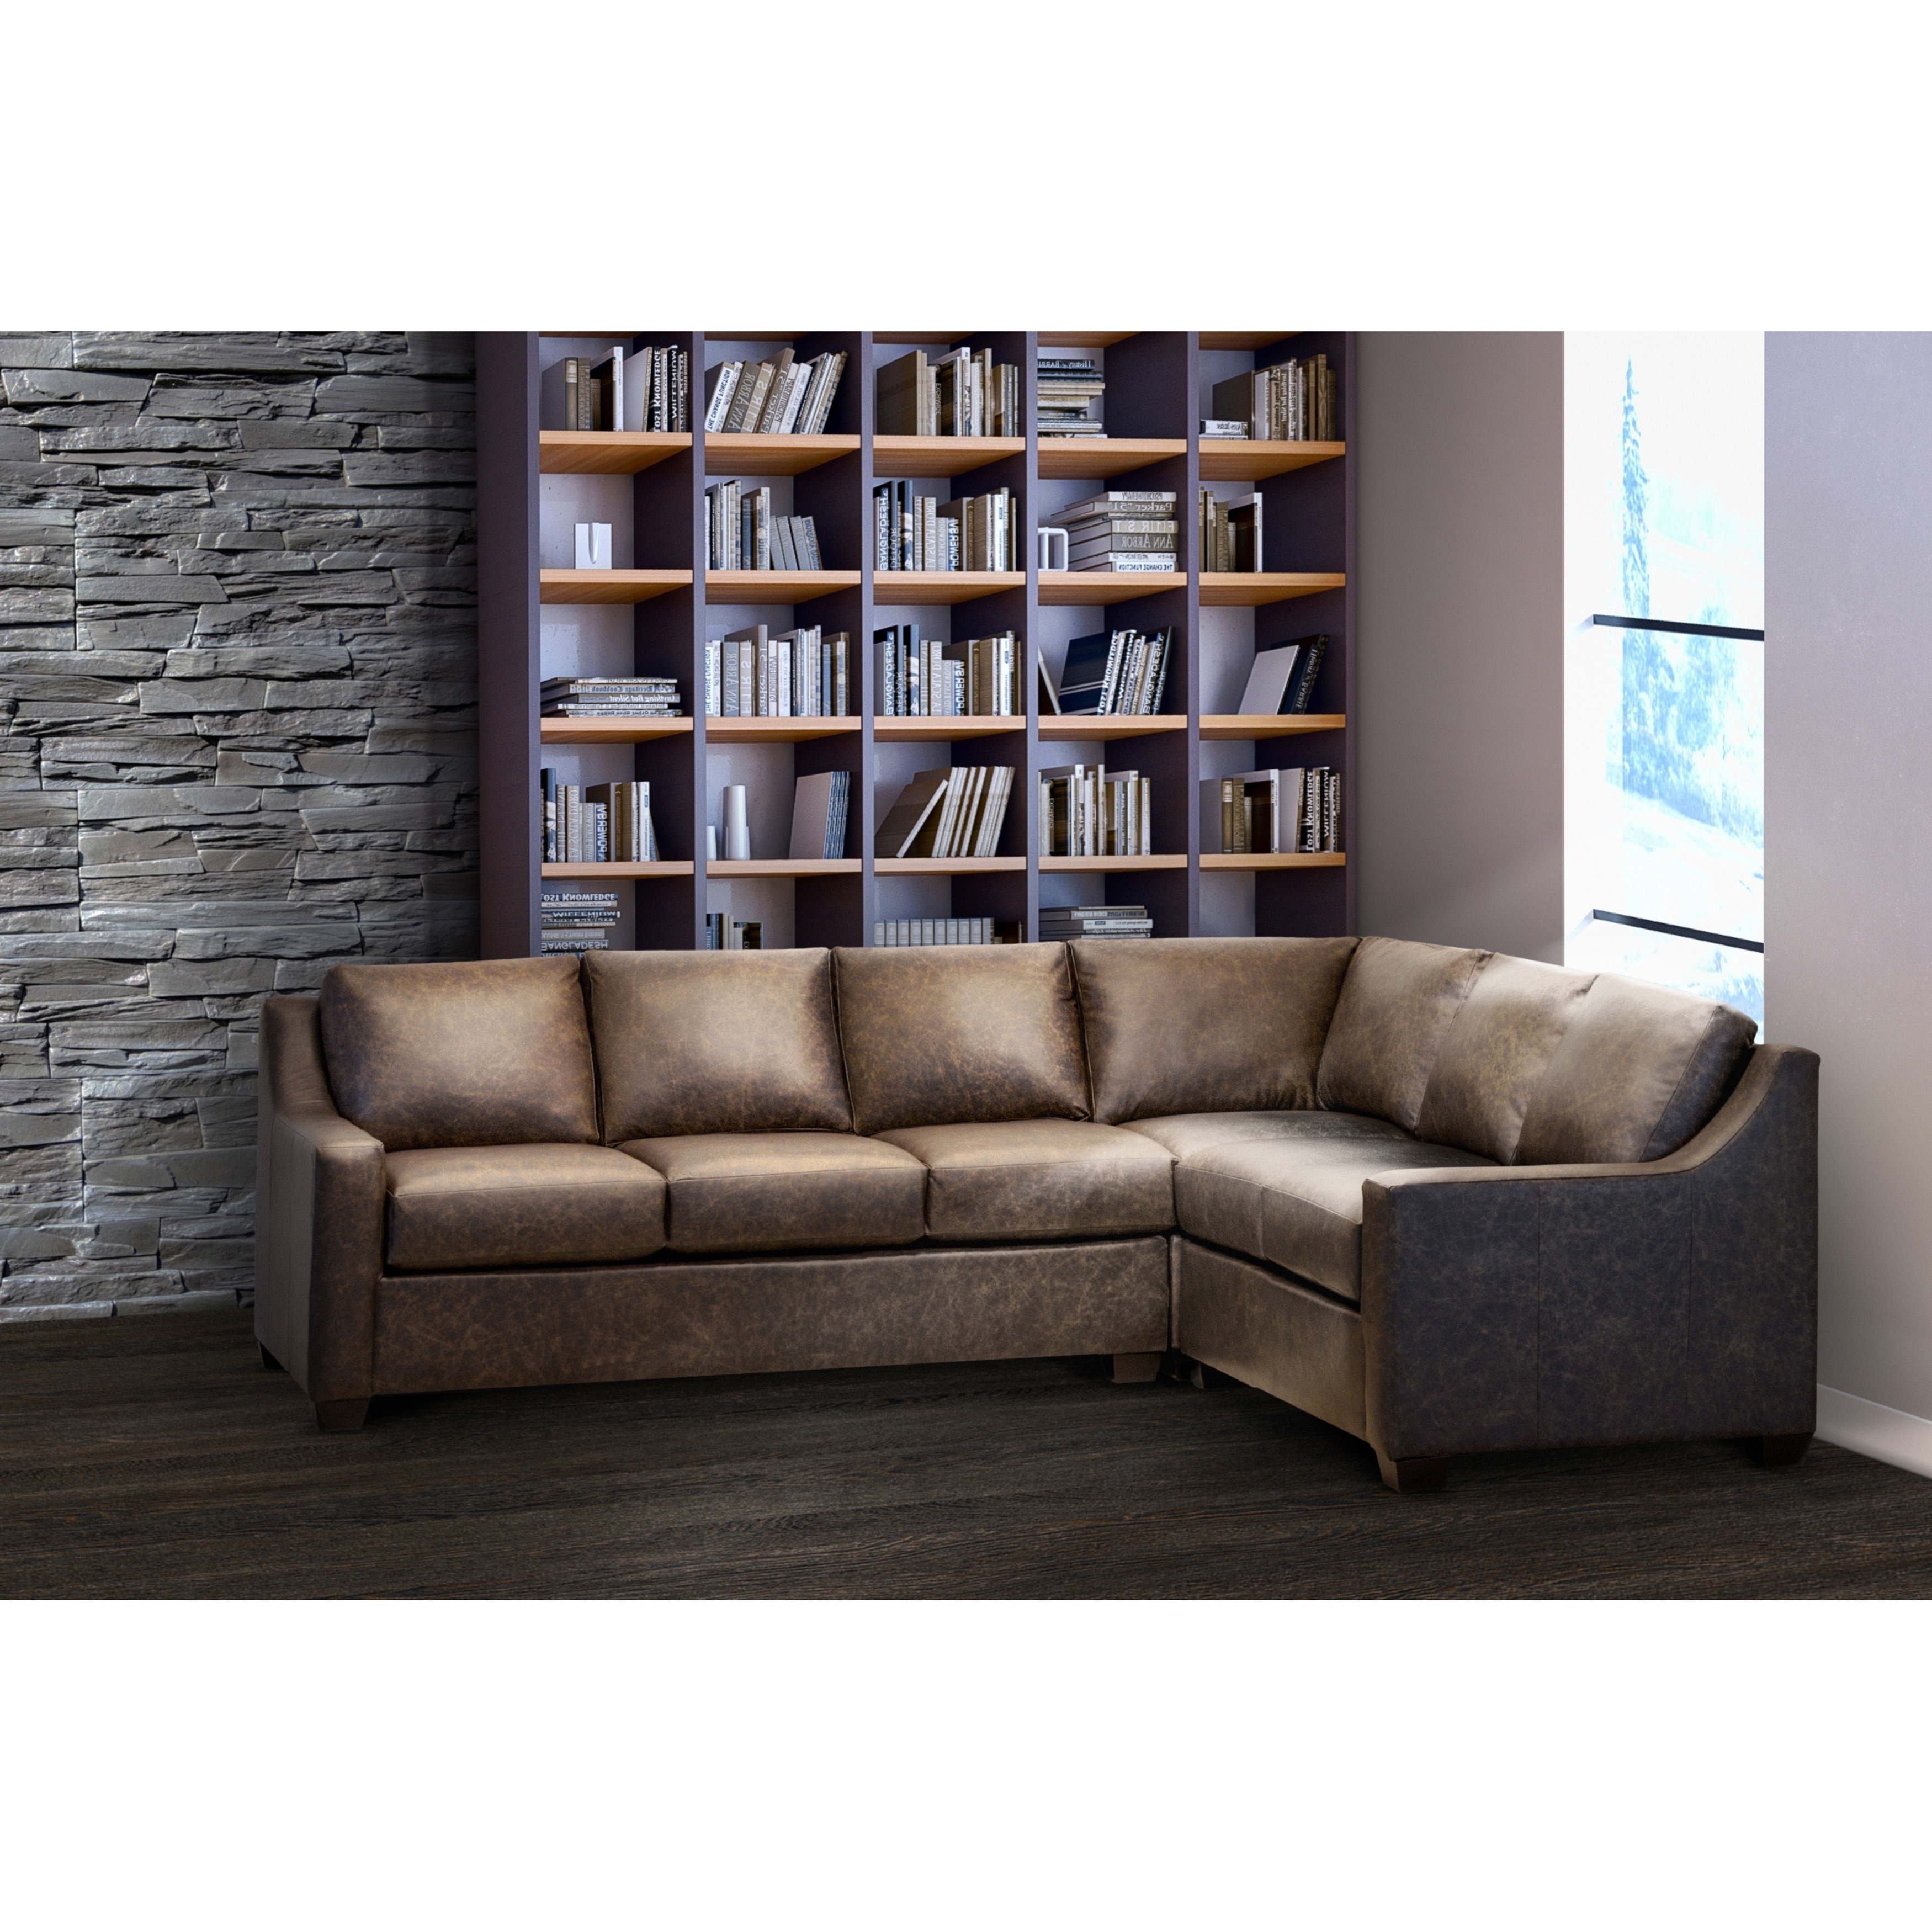 made in usa sandler distressed brown top grain leather sectional sofa